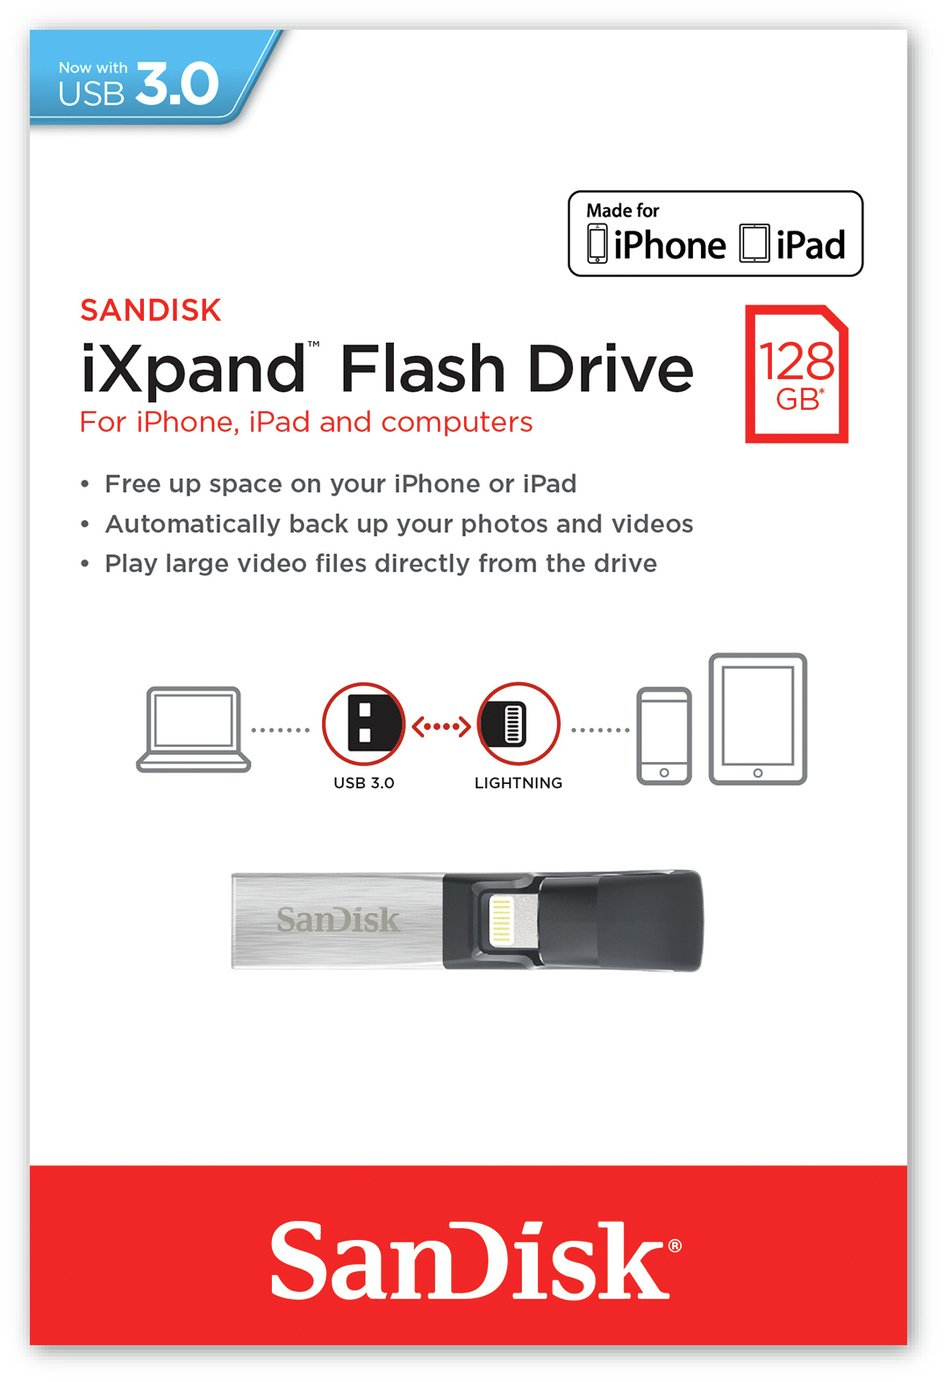 SanDisk iXpand 128GB Flash Drive for iPhone and iPad.